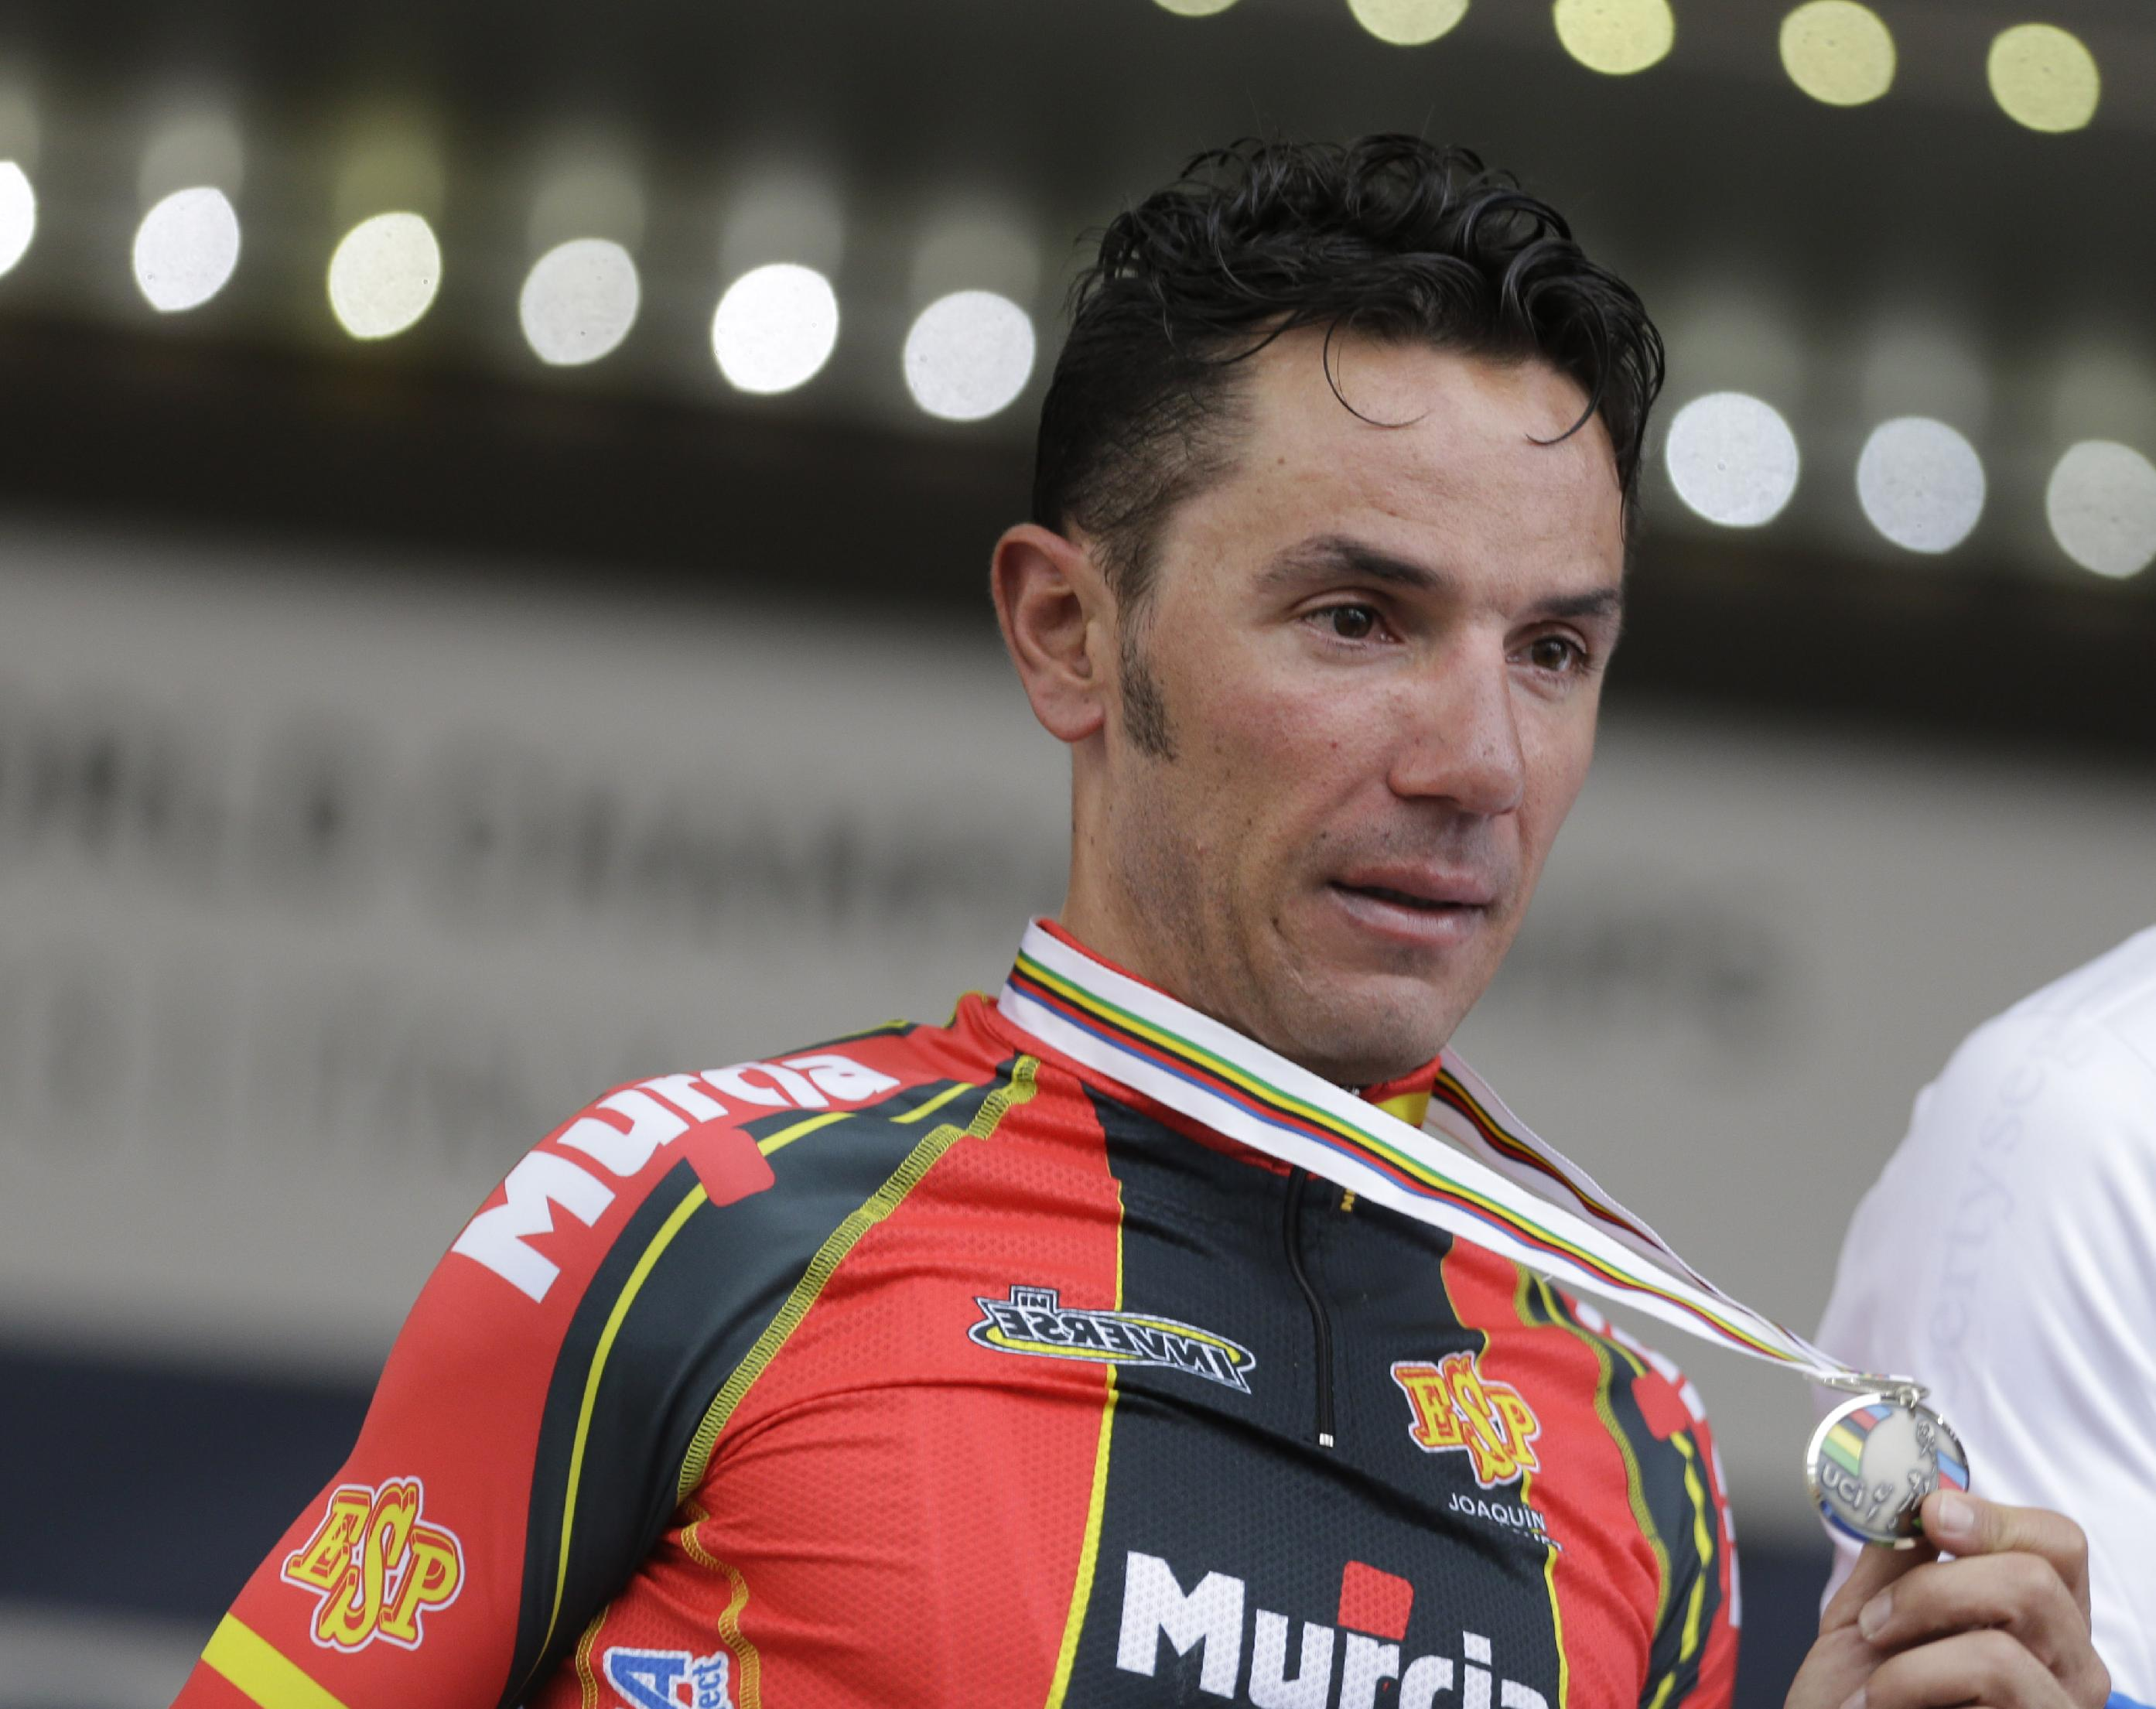 Silver medalist Joaquin Rodriguez, of Spain, shows his medal during the podium ceremony for the men's elite road race event, at the road cycling world championships, in Florence, Italy, Sunday, Sept. 29, 2013